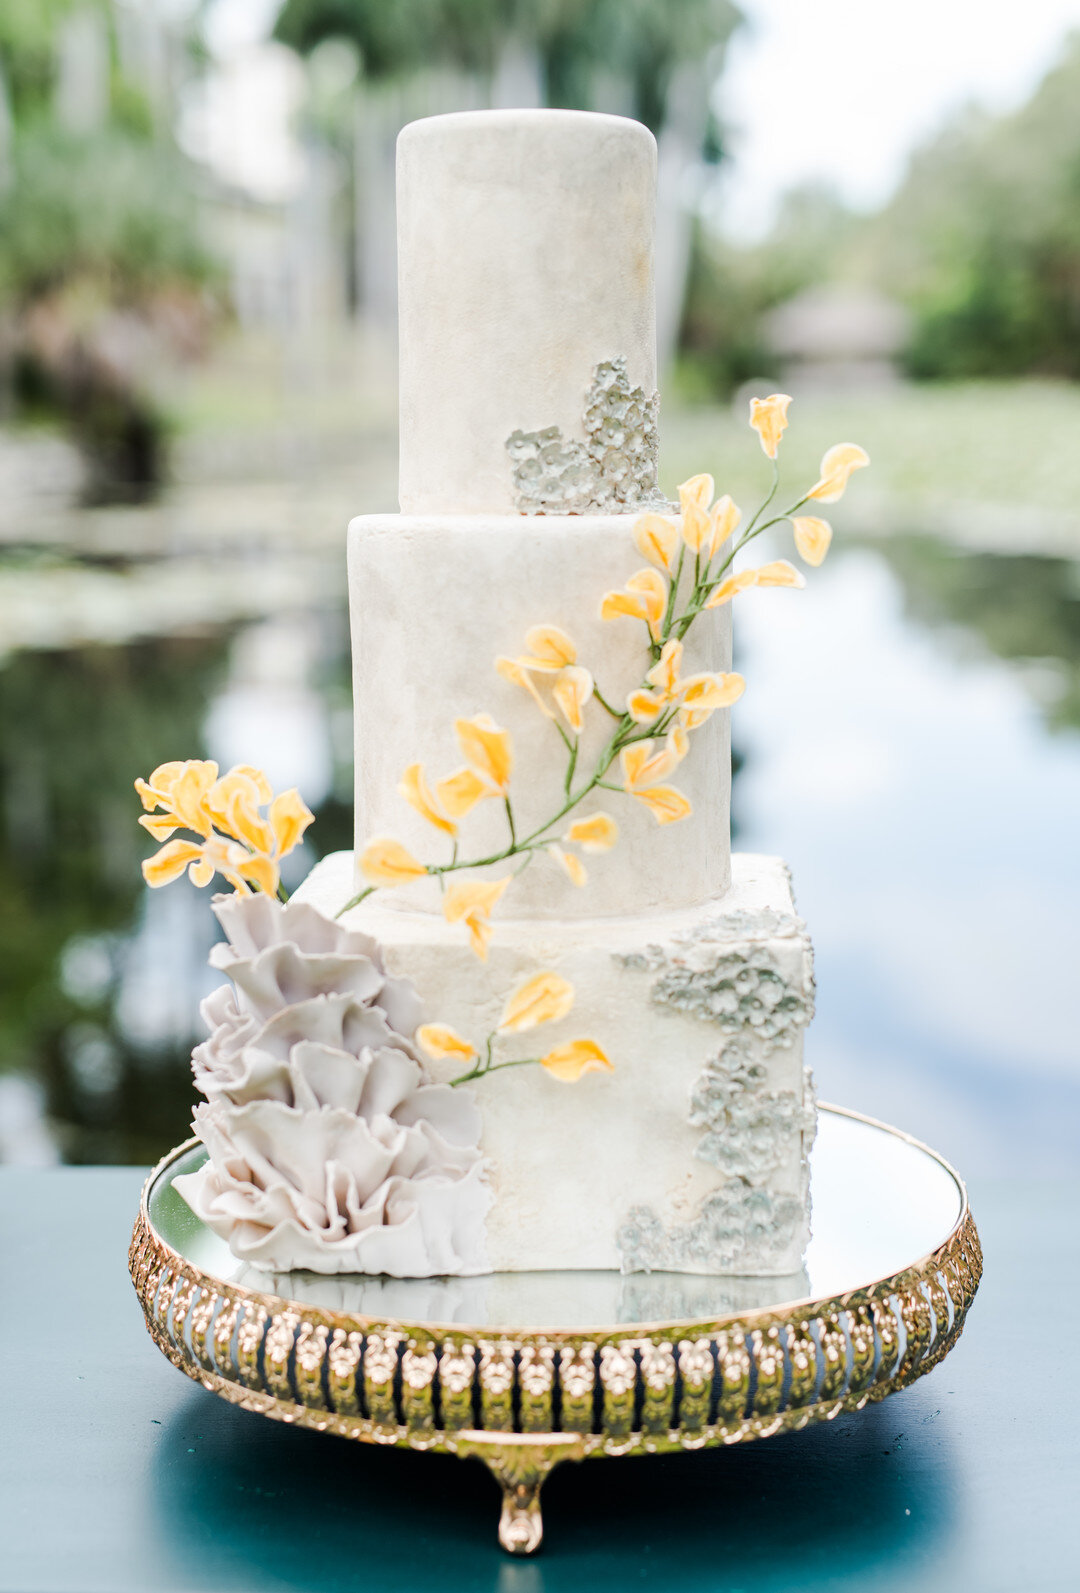 Vintage Southern Charm at Historic Bonnet House  & Gardens_Suzanne Lytle Photography_FortLauderdaleStylized87_big.JPG